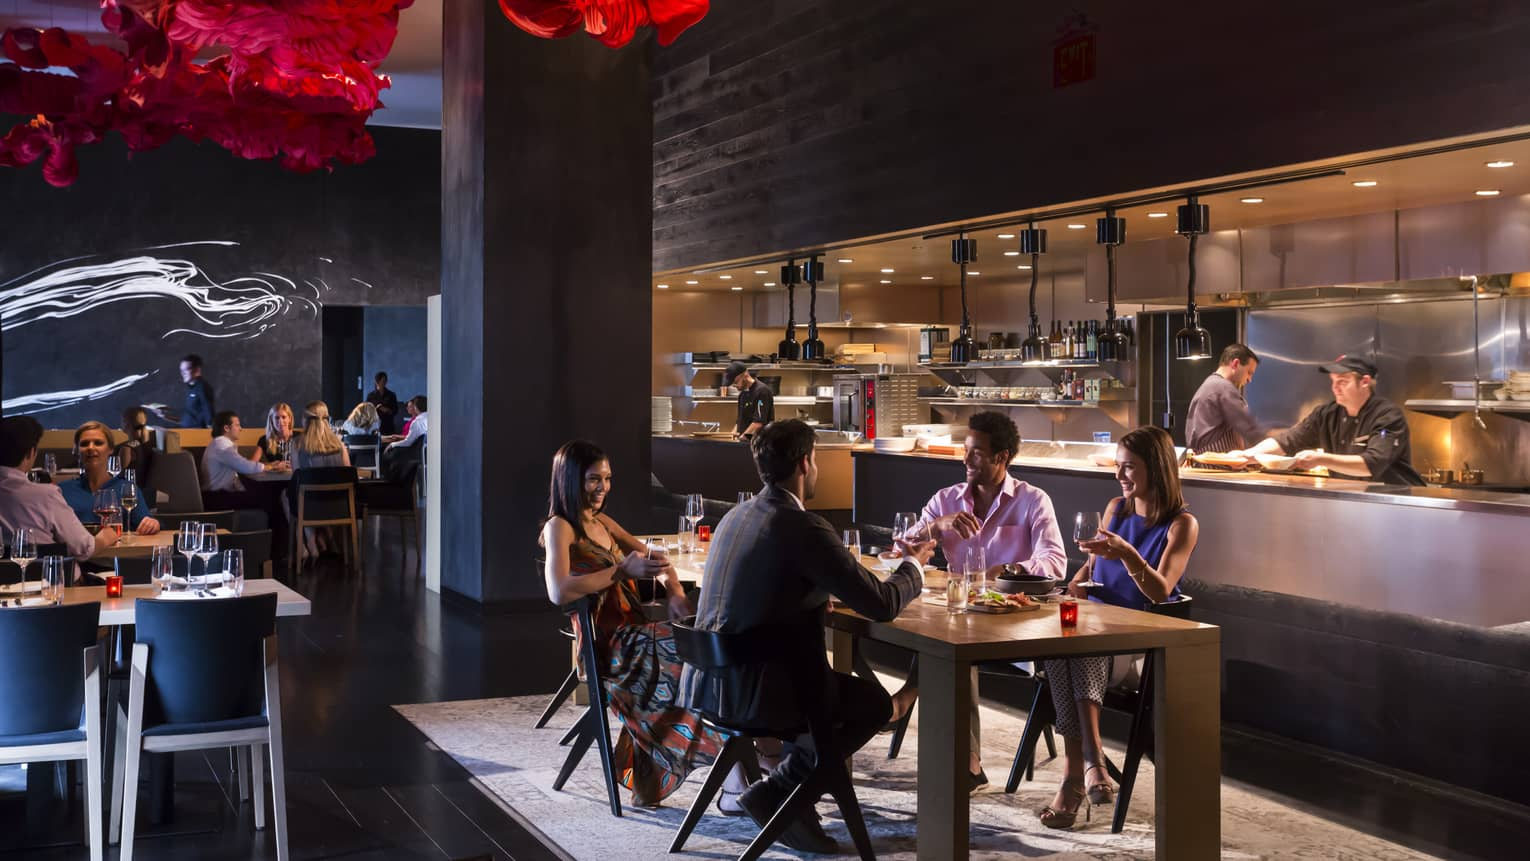 Guests dine in a dimly lit room, red sculptural accents hang on the ceiling, chefs prepare food in an open kitchen